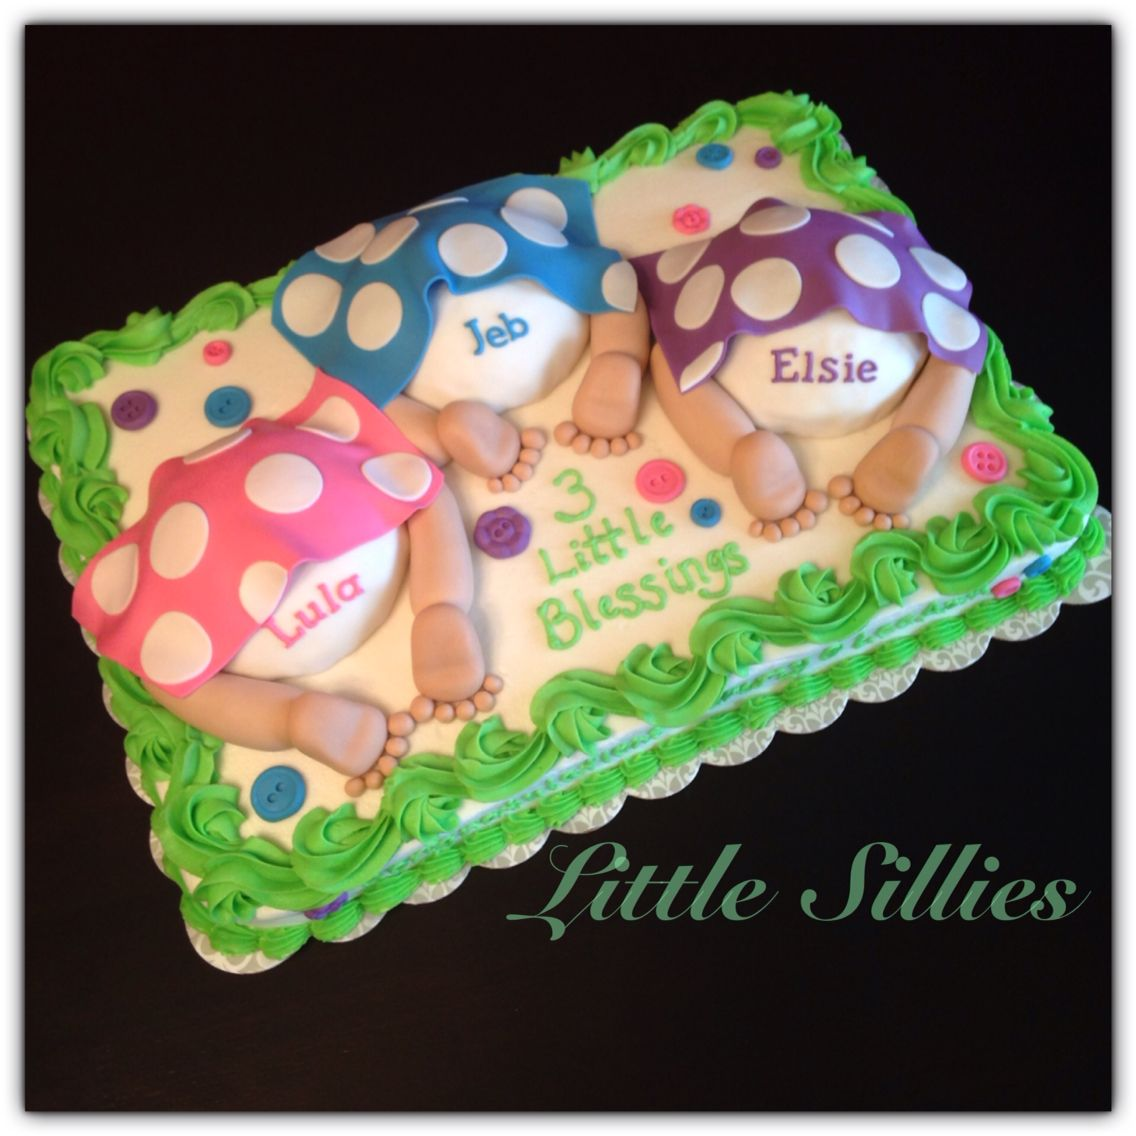 A Baby Bottom Baby Shower Cake For Triplets With Images